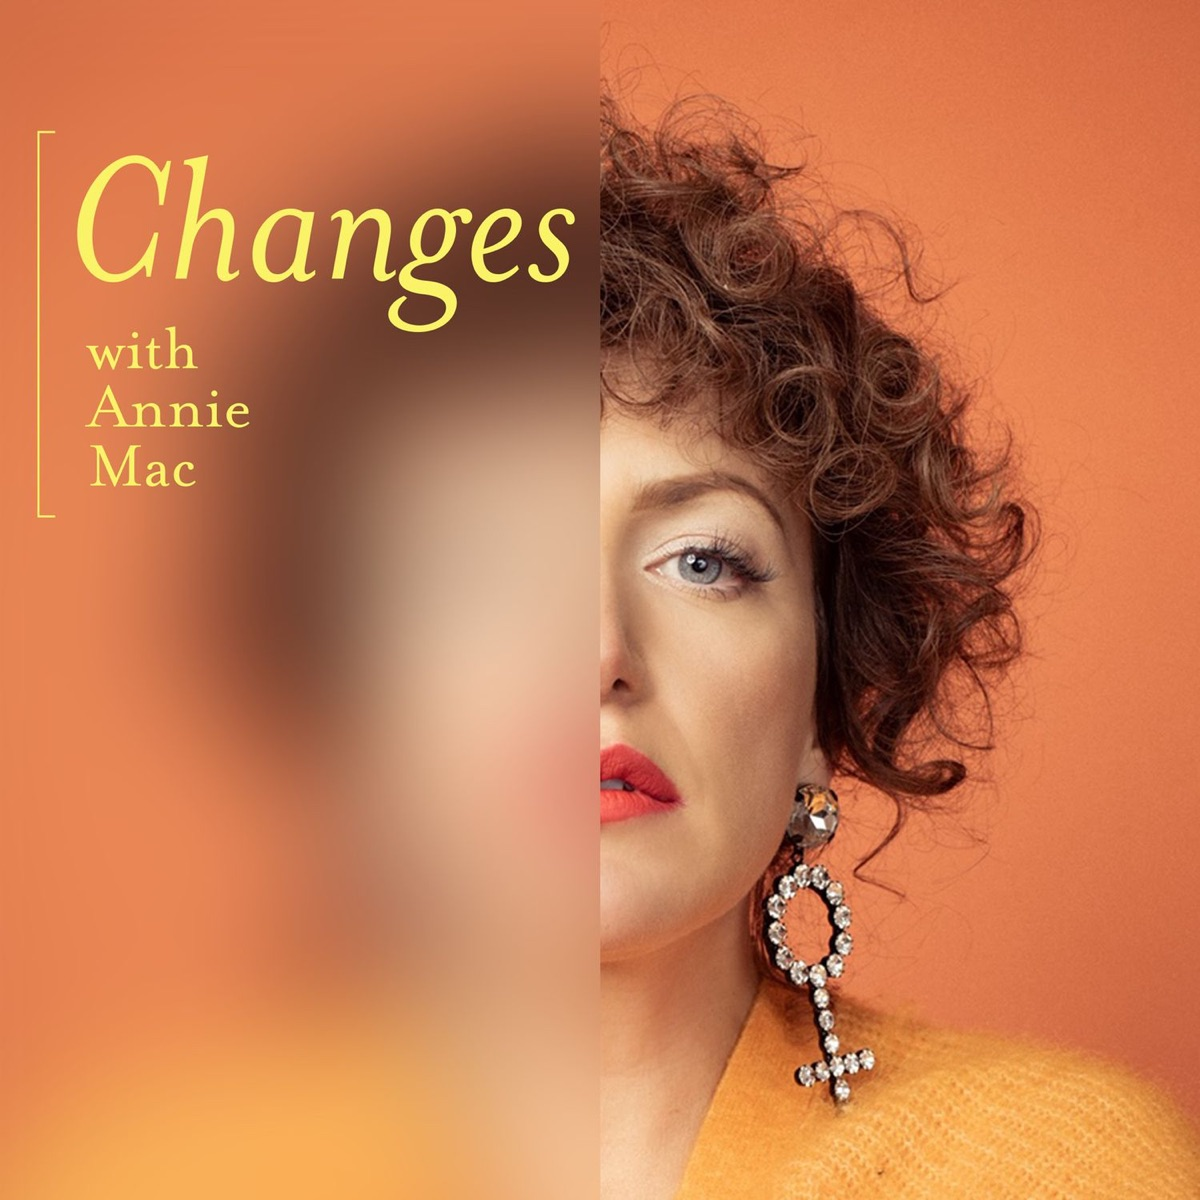 Changes with Annie Mac